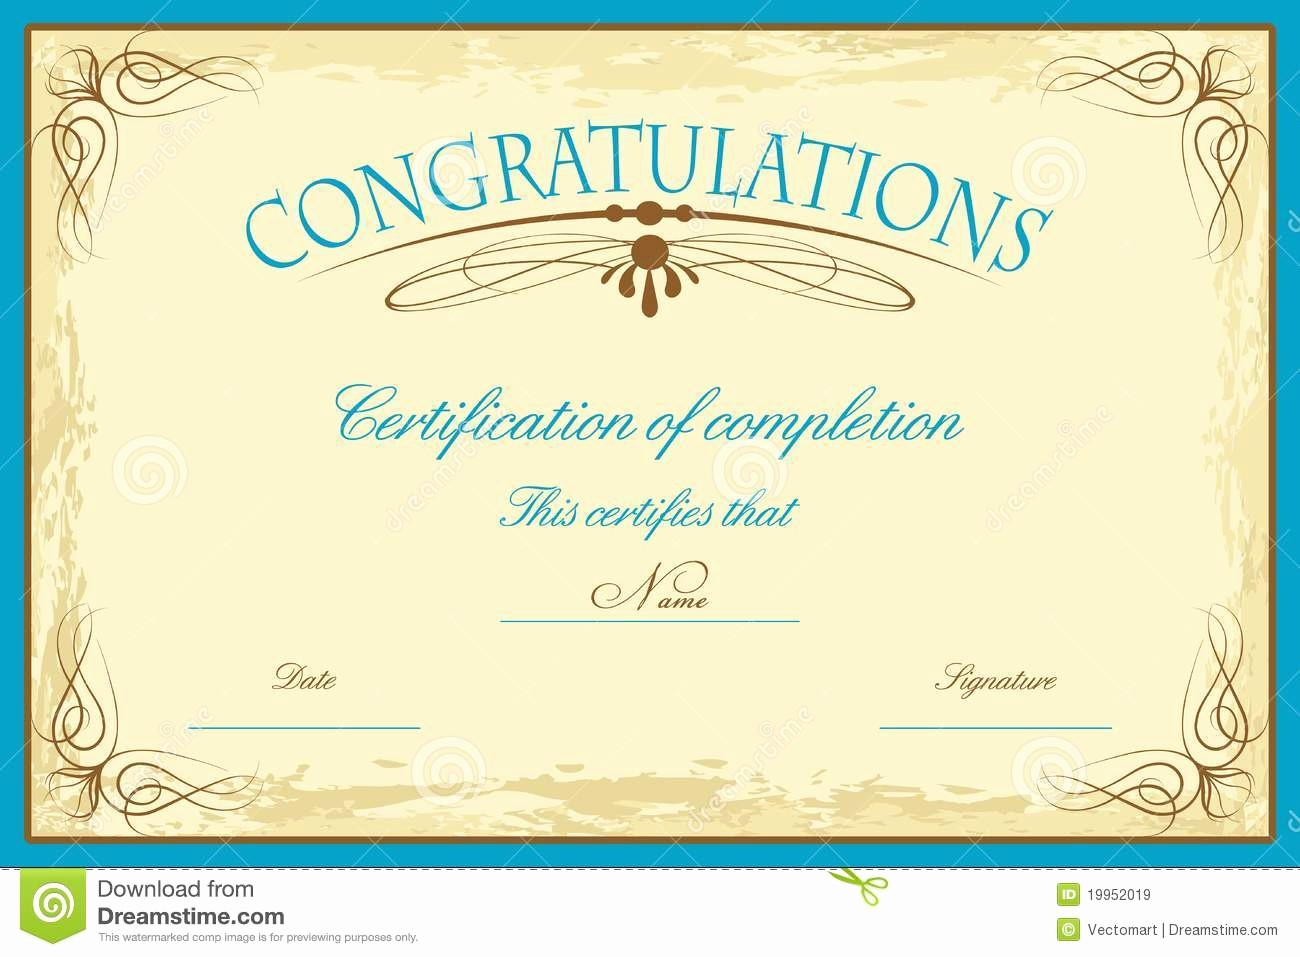 Certificate Design Templates Free Download New Certificate Templates Fotolip Rich Image and Wallpaper